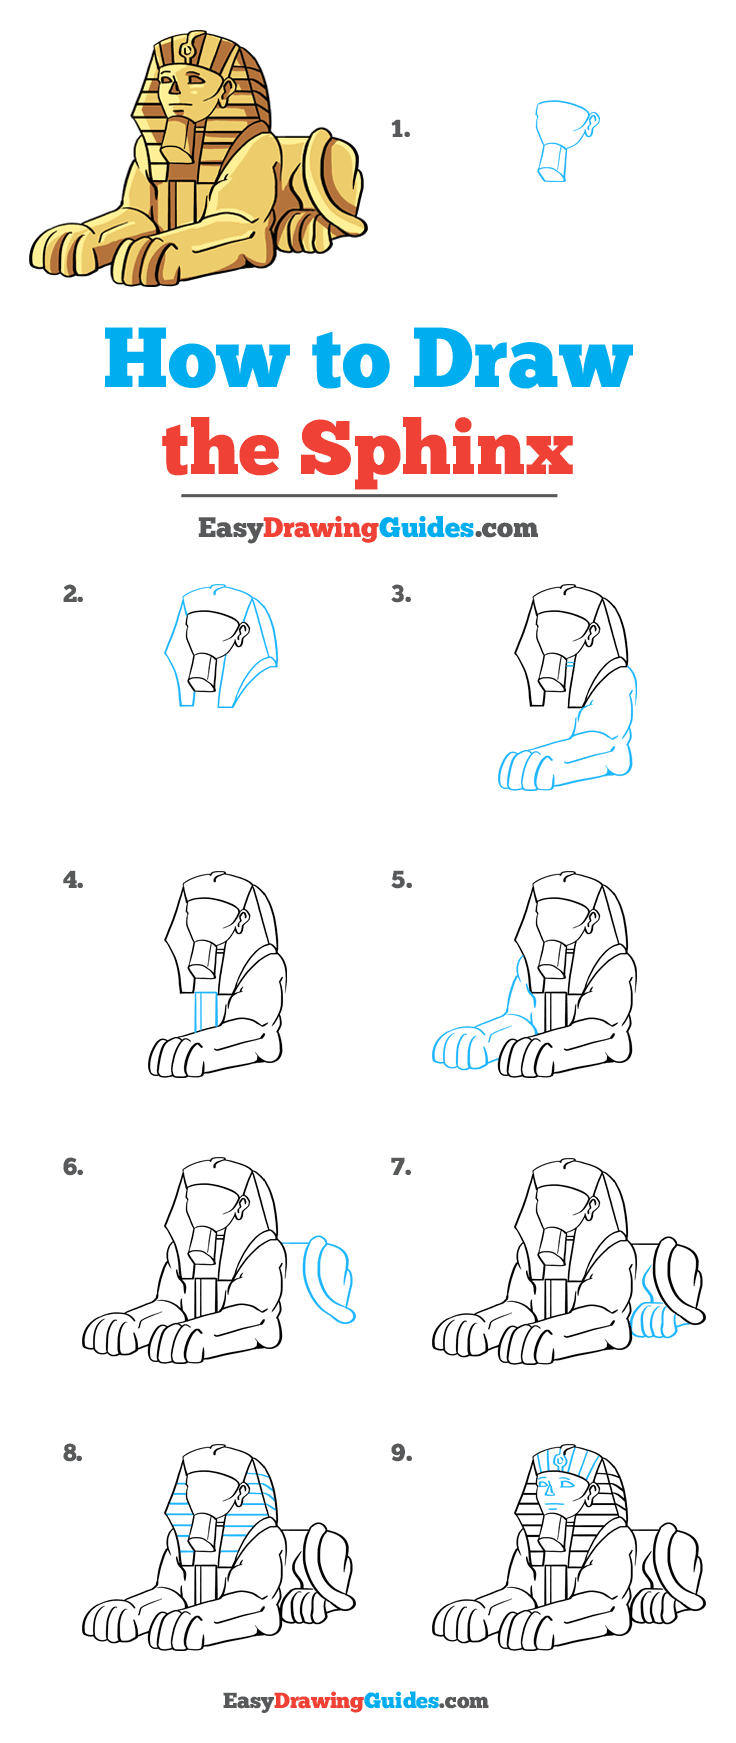 How to Draw Sphinx